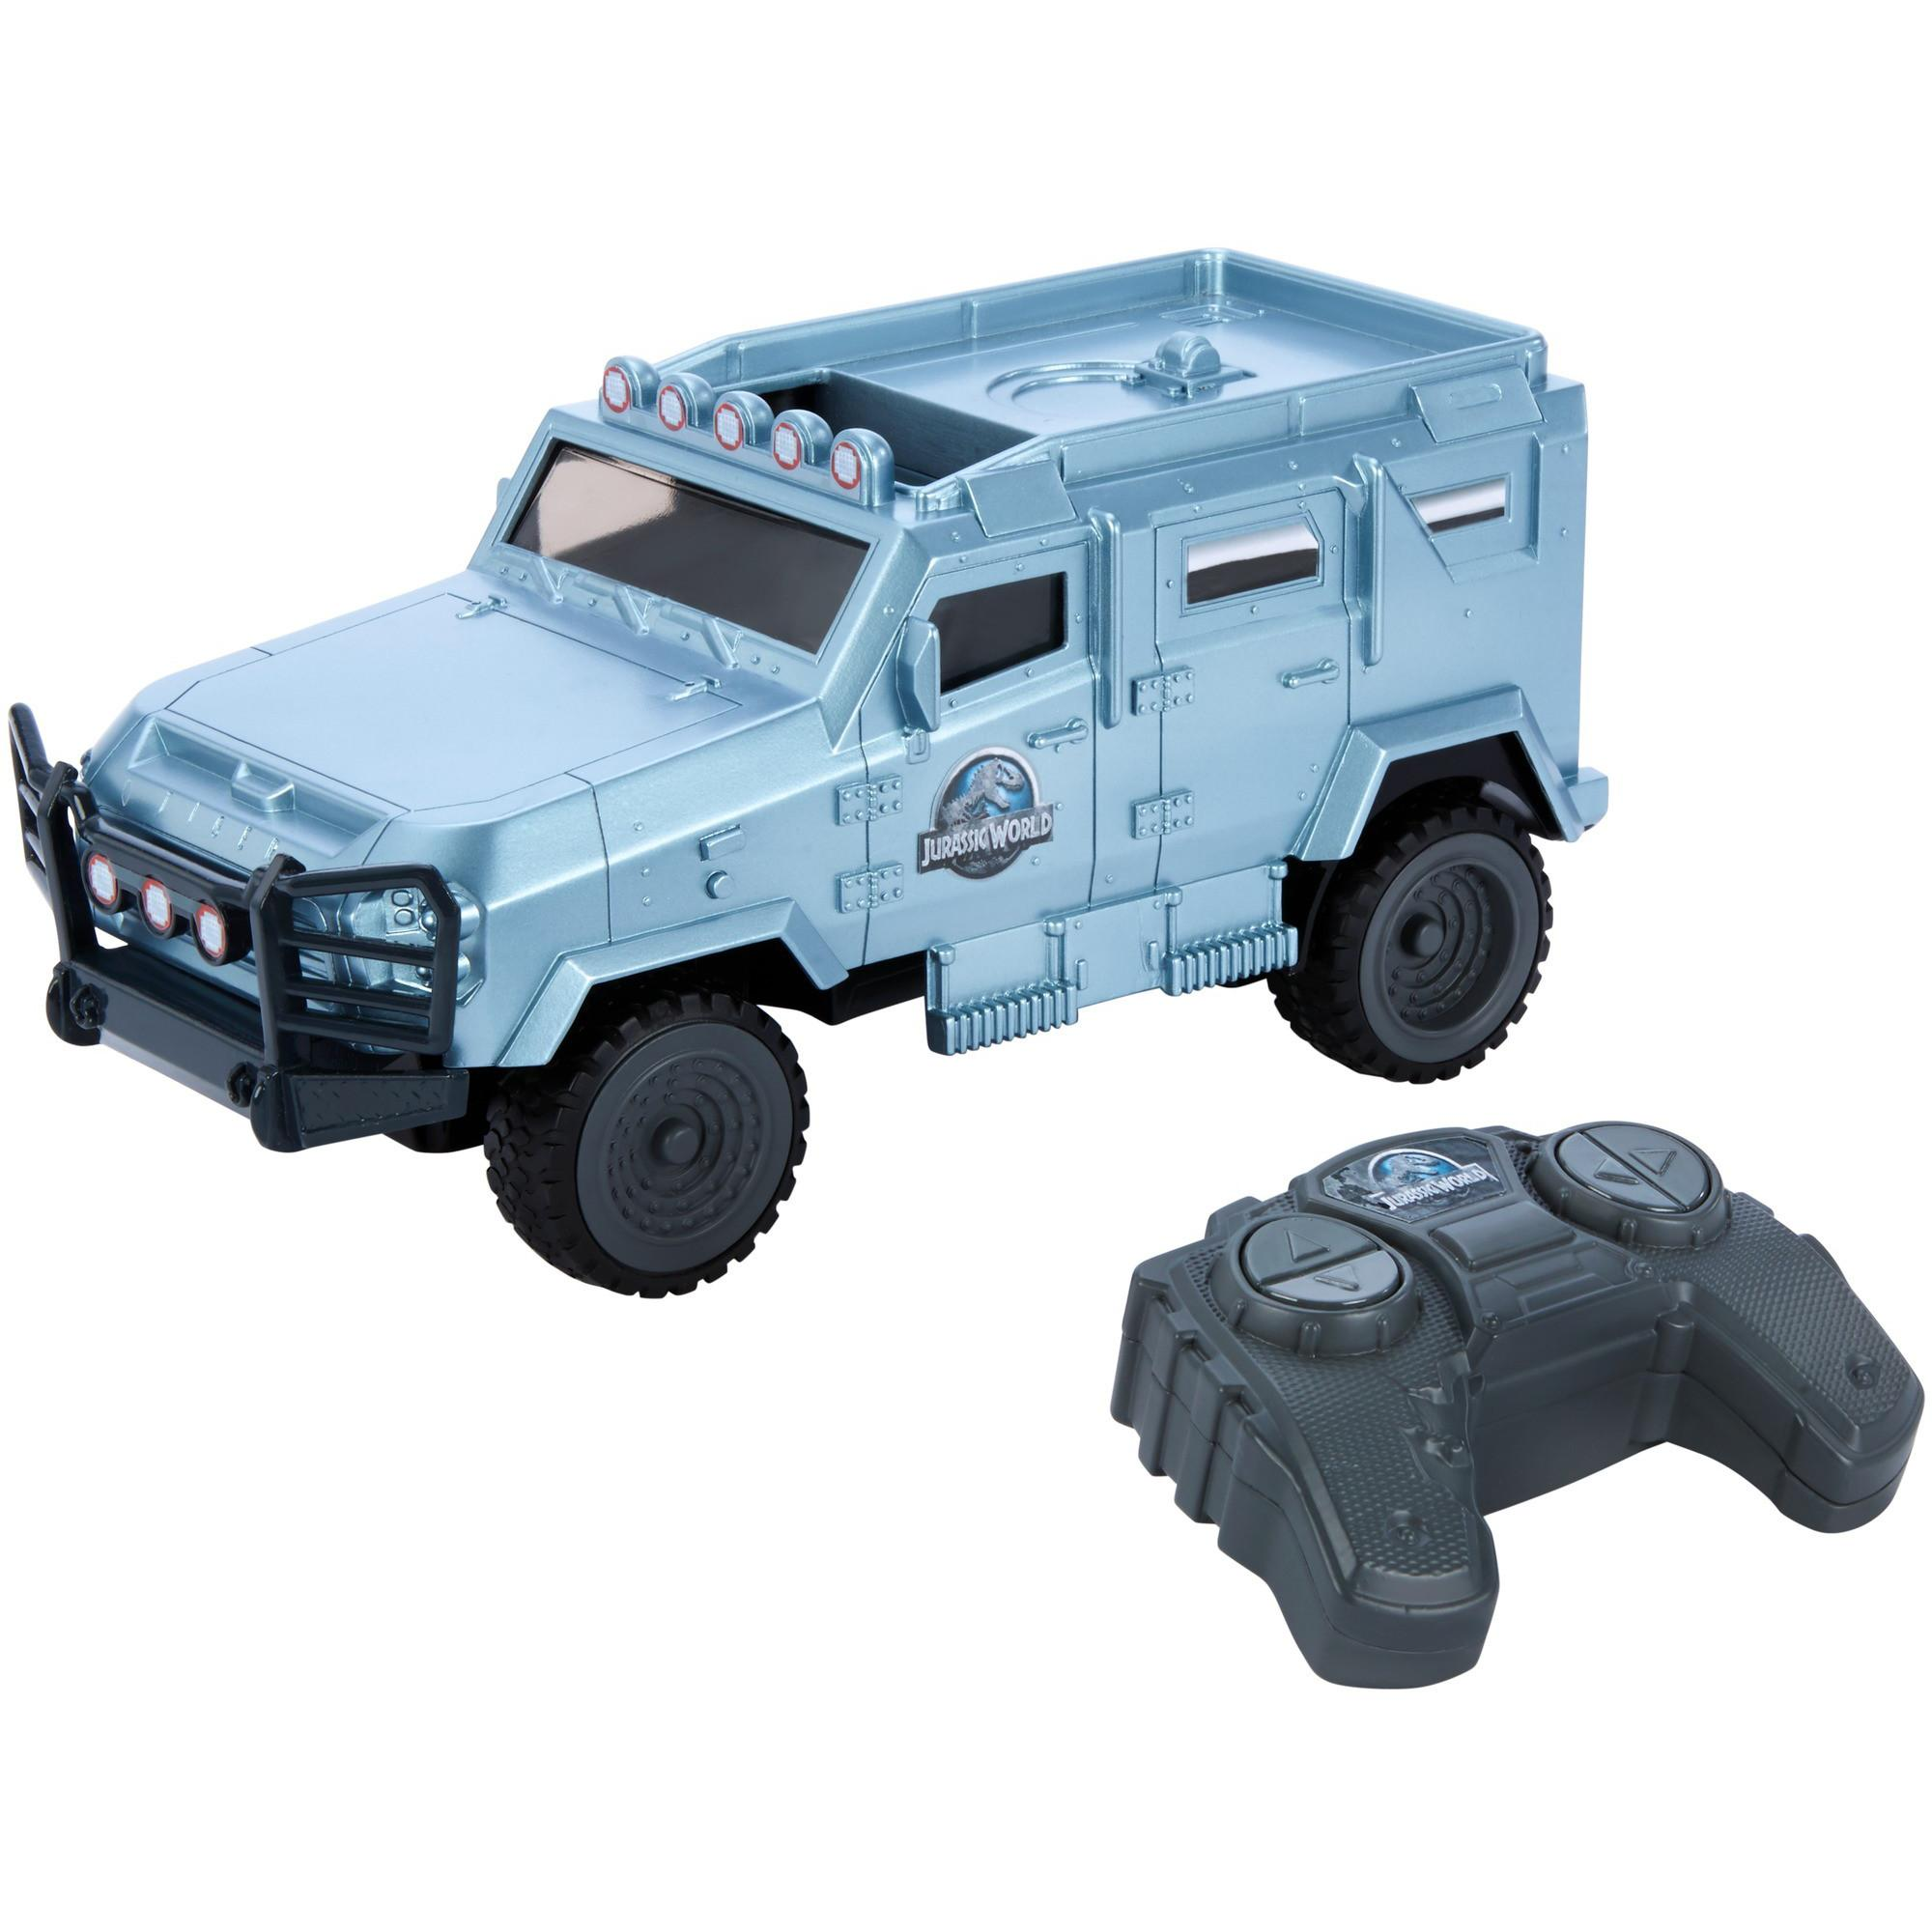 Matchbox Jurassic World MDT Tiger Light Protected RC Vehicle